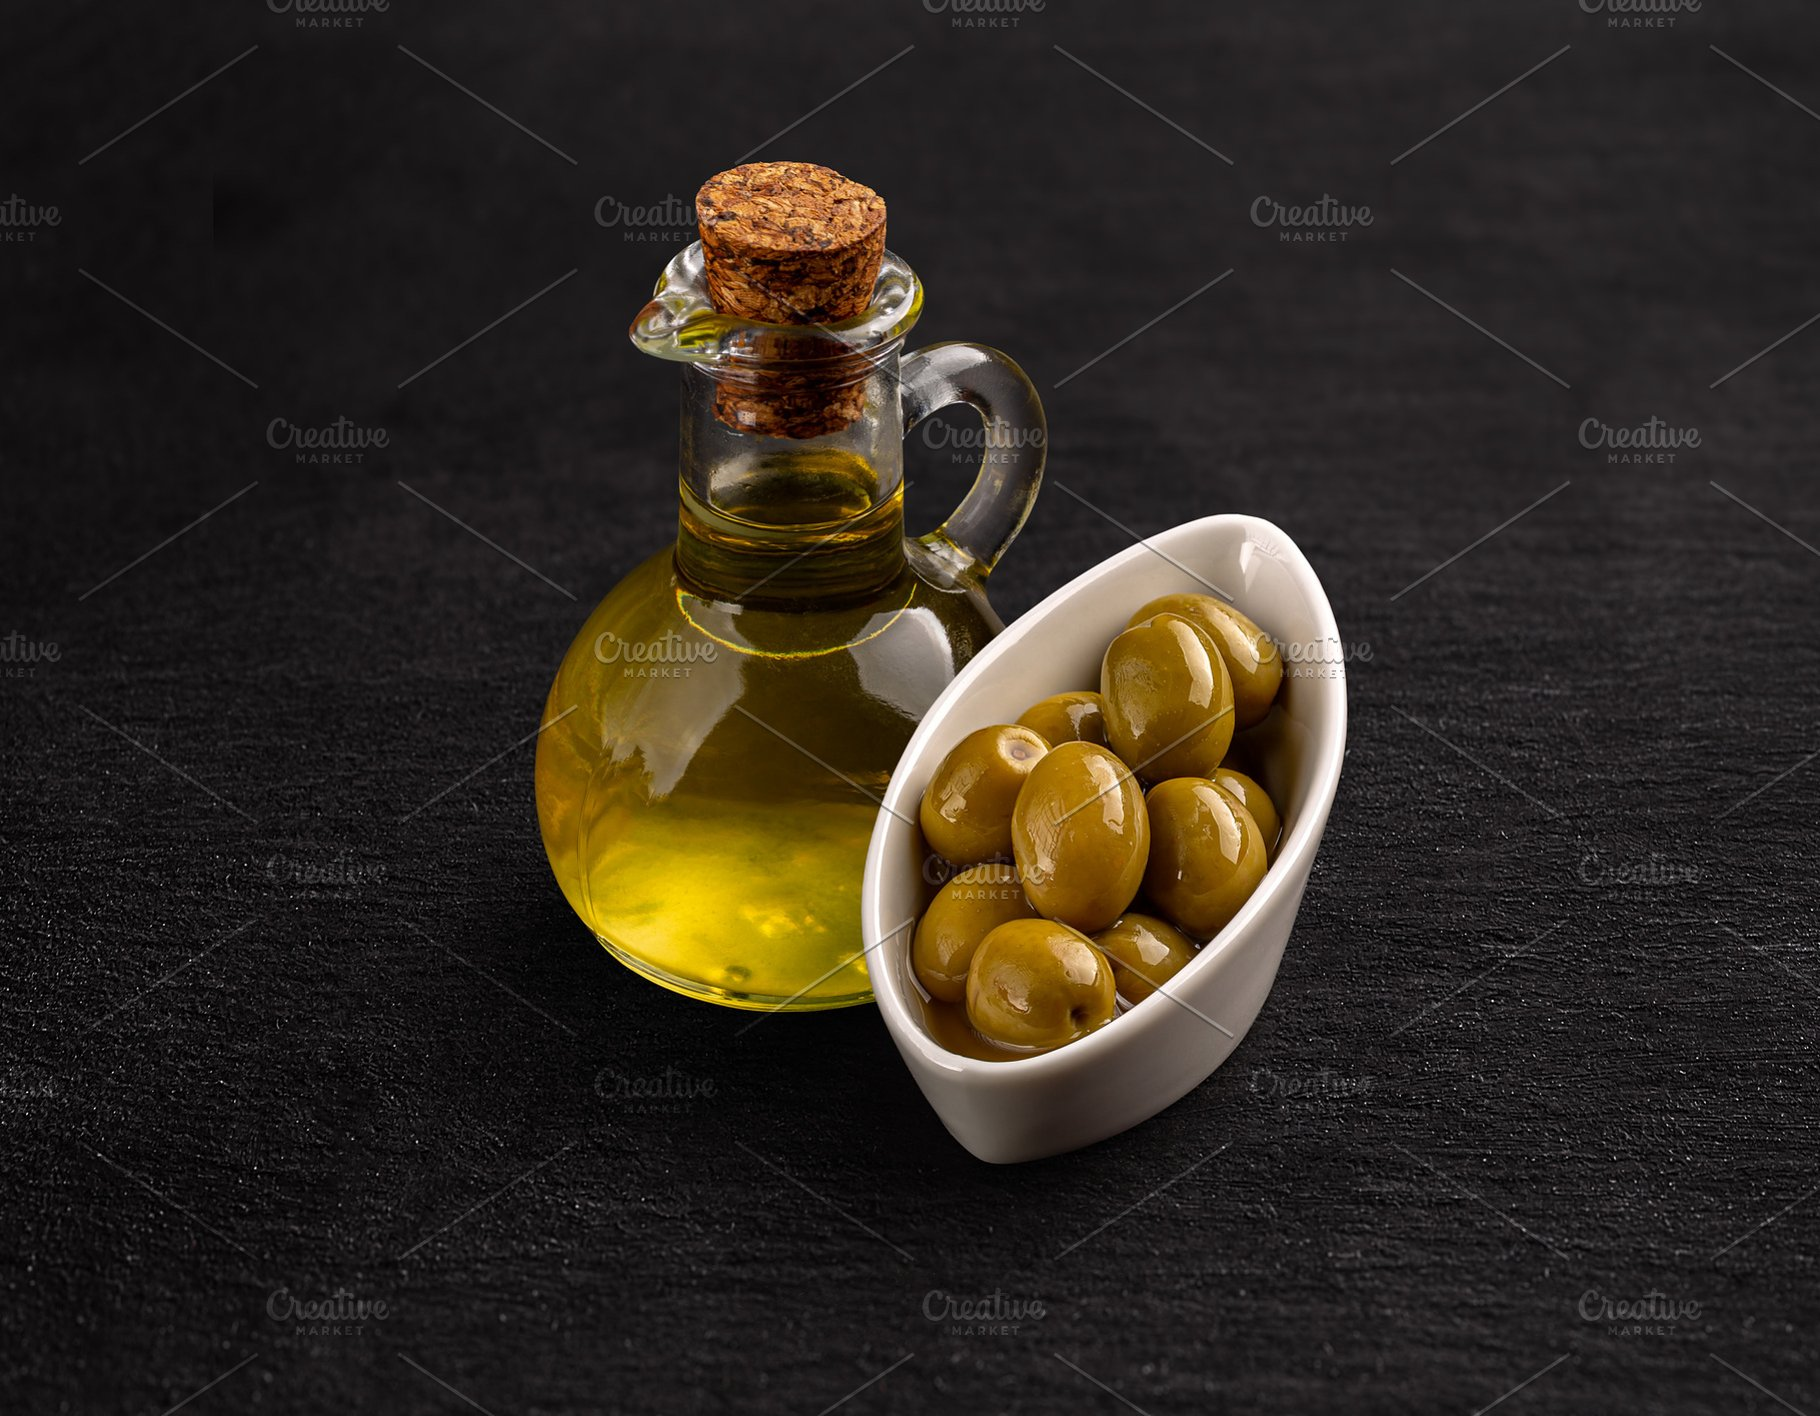 Olive oil and green olive seeds